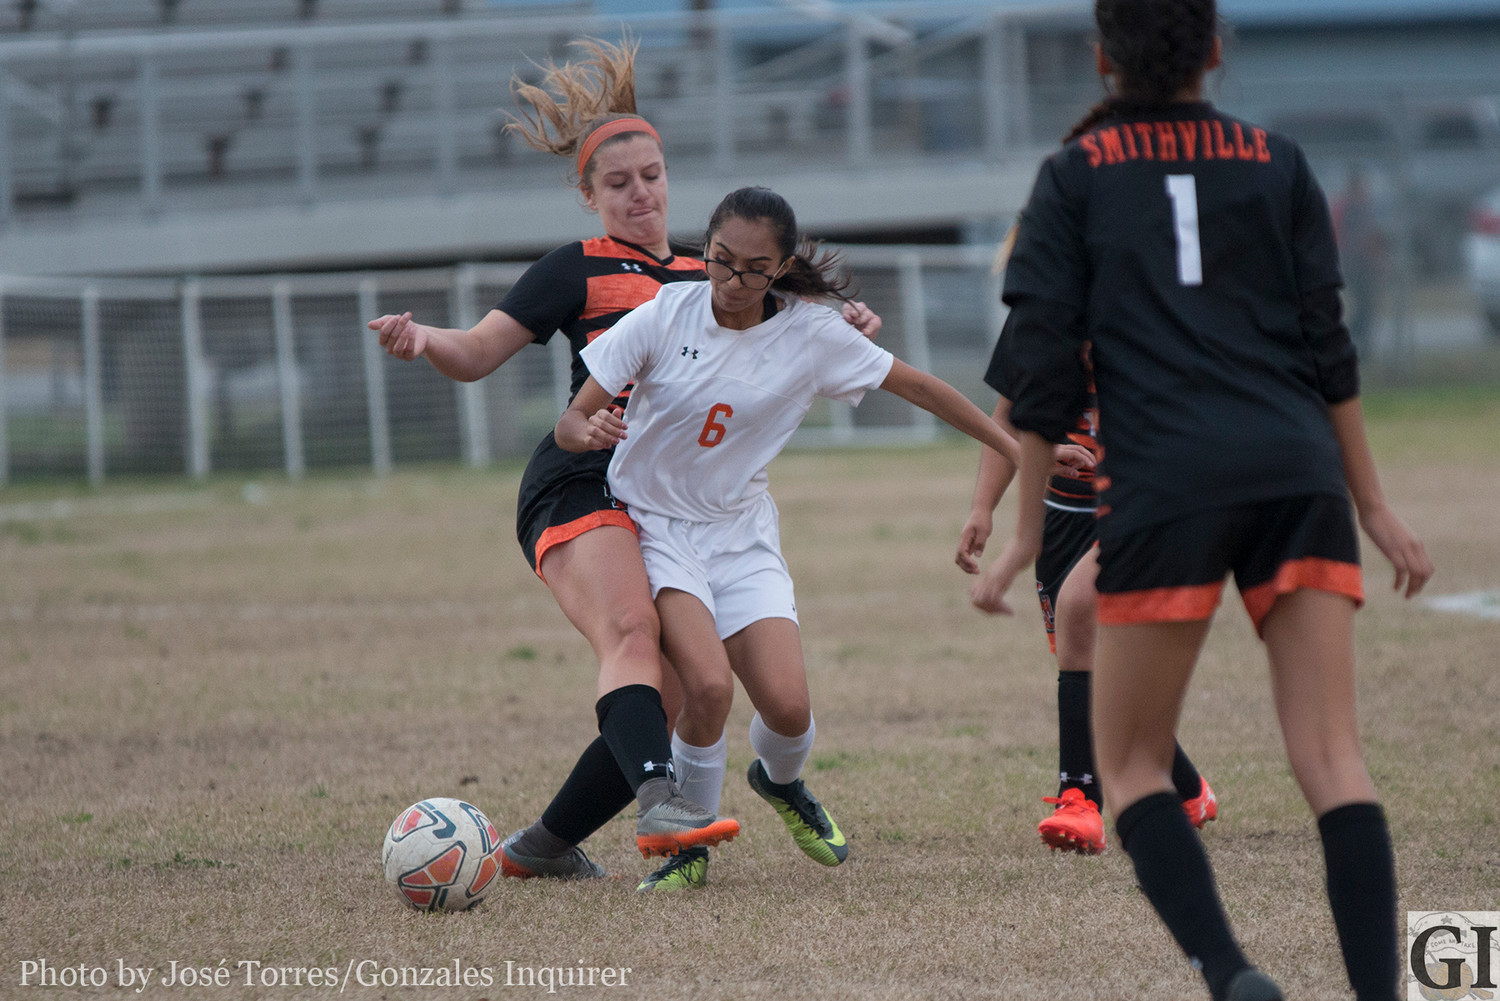 Samantha Gallegos fights for the ball.